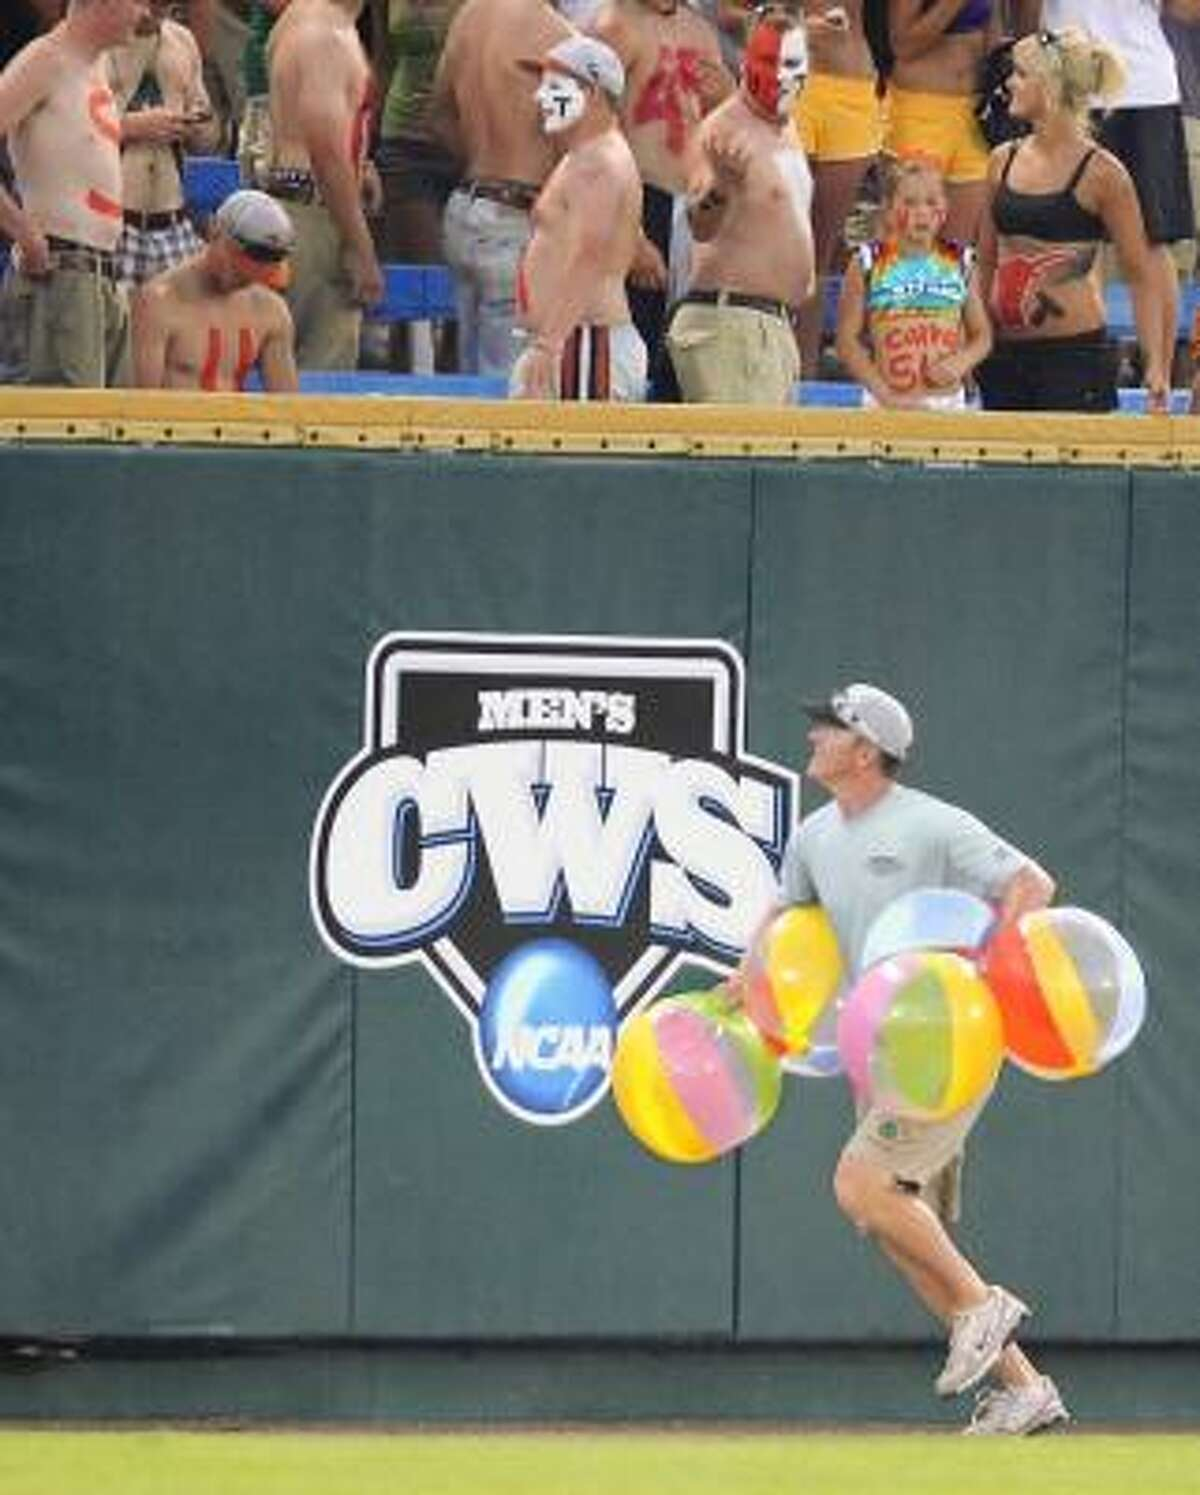 A member of Rosenblatt Stadium grounds crew collects beach balls that fell onto the field while ASU took on Texas in Omaha, Neb.